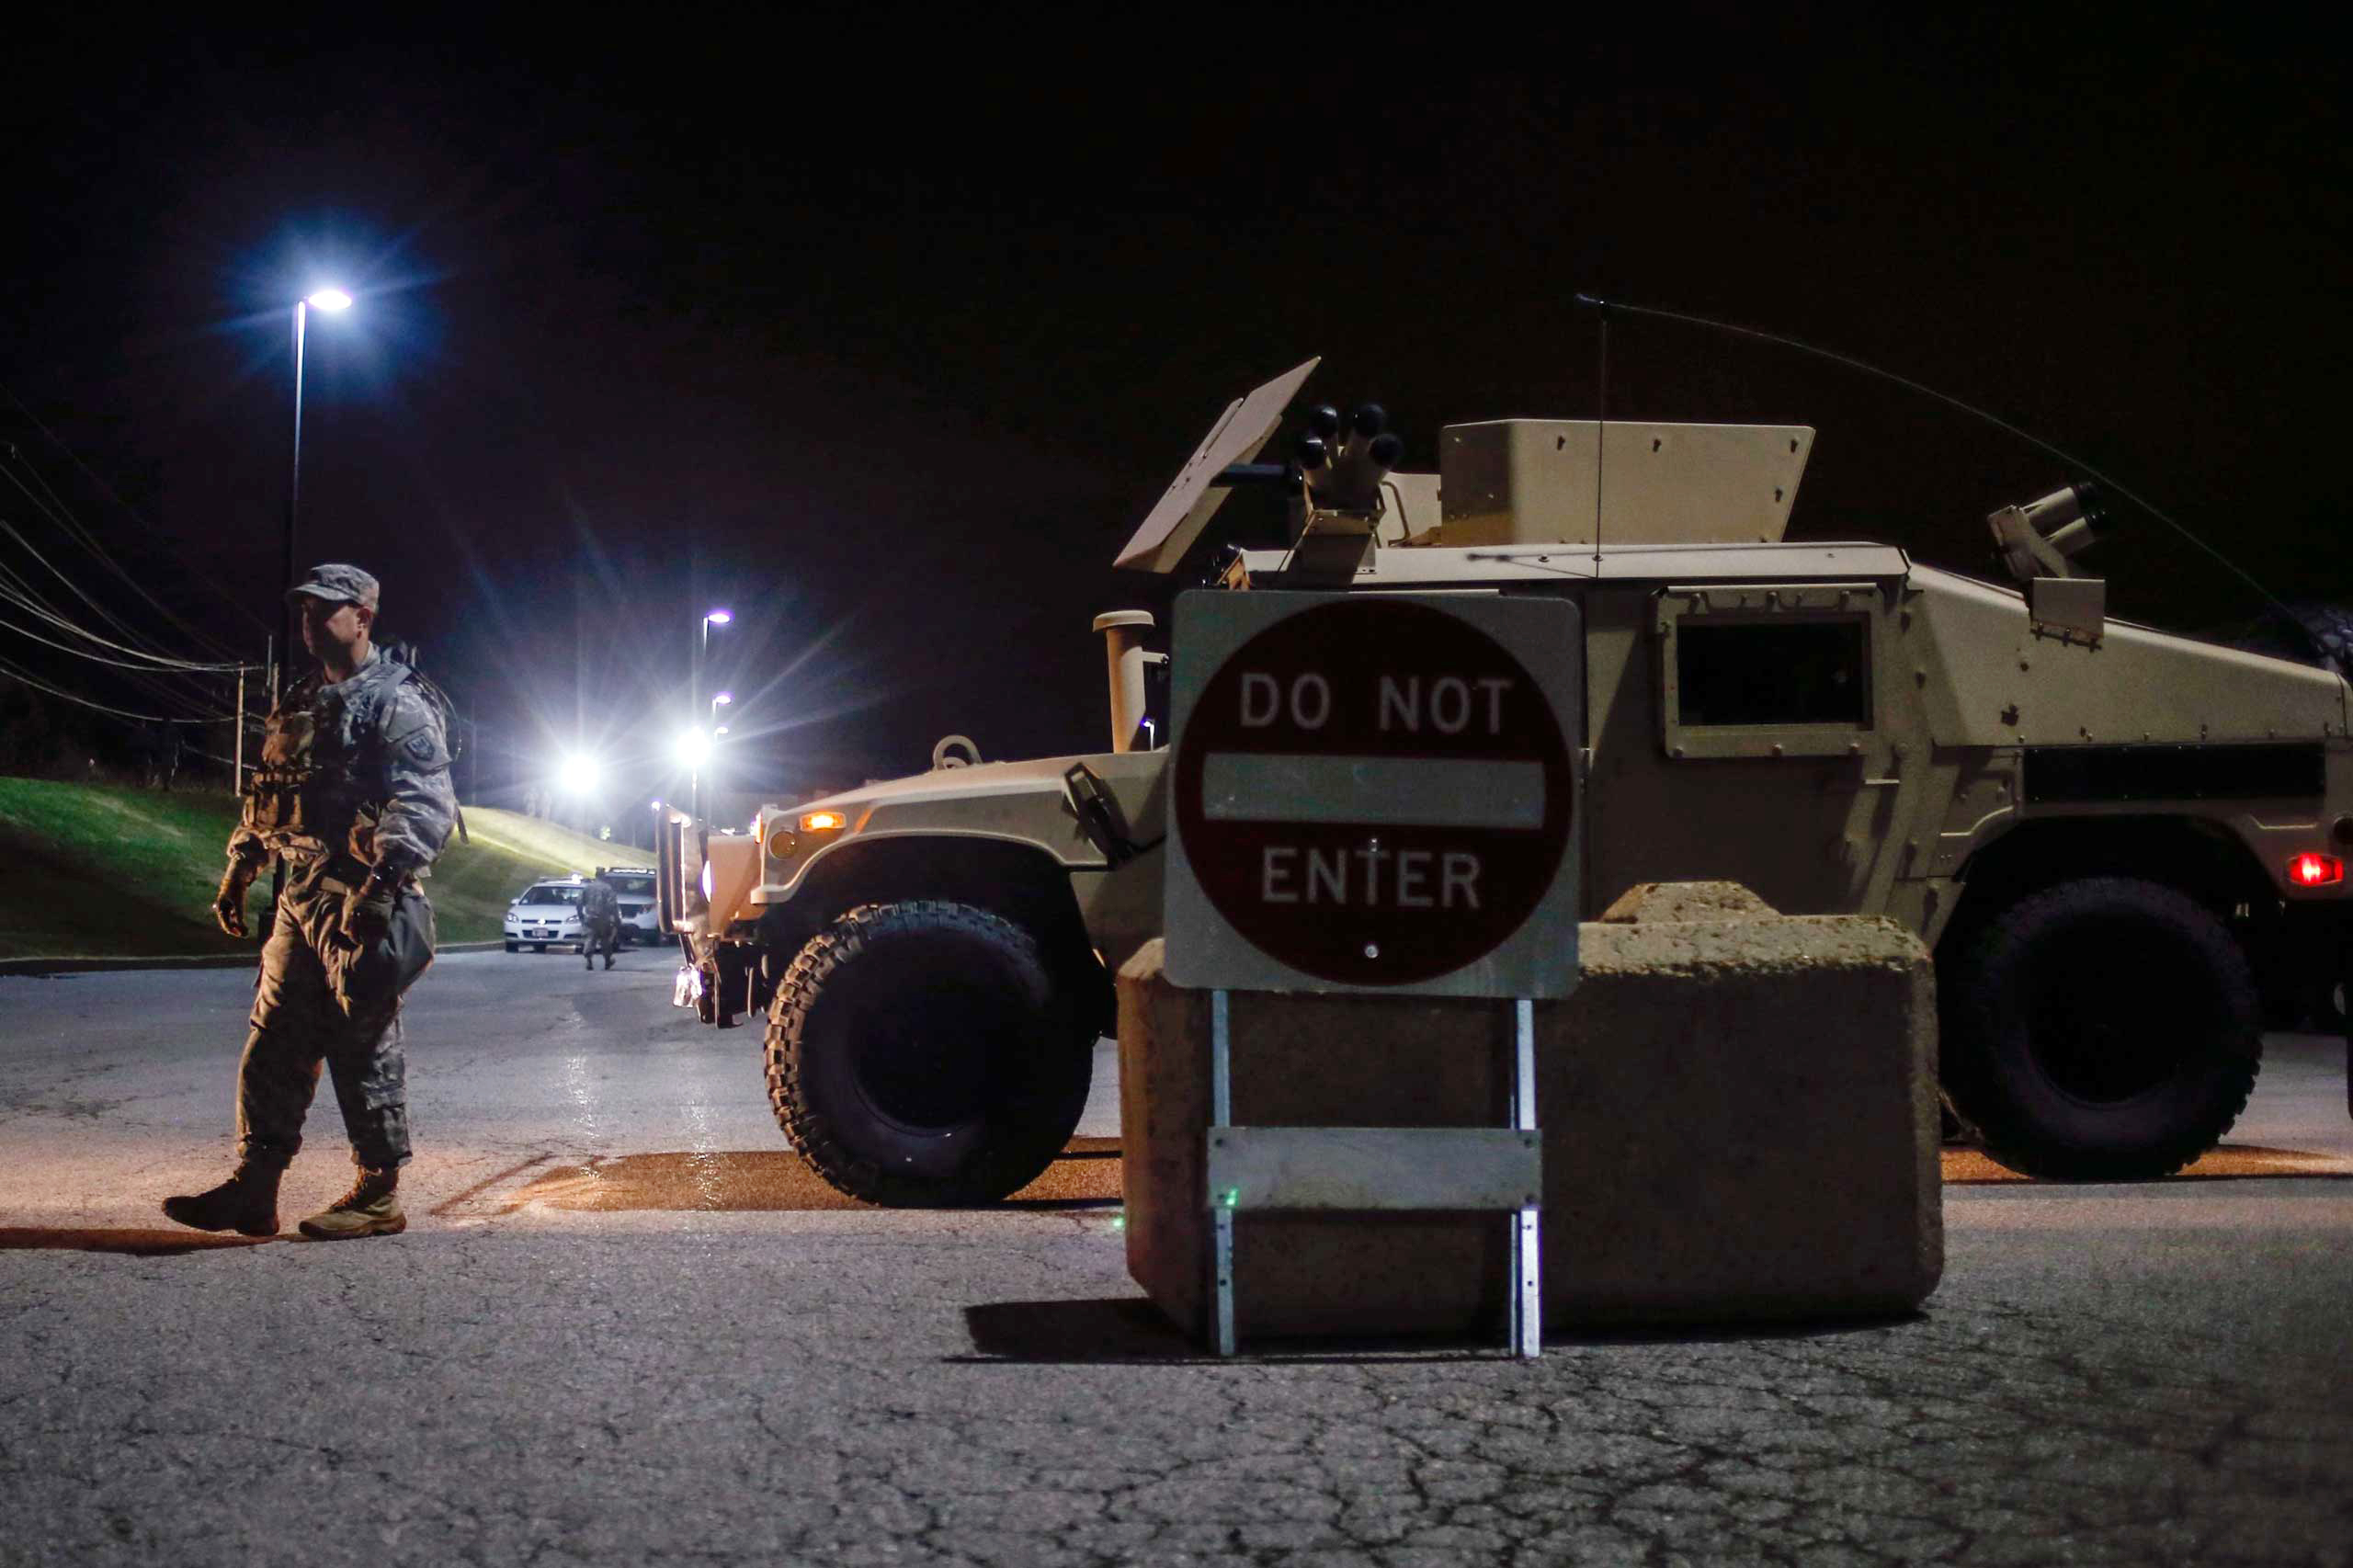 A member of the National Guard stands along a parked military vehicle in the back of a shopping center in Ferguson, Mo. on Nov. 24, 2014.